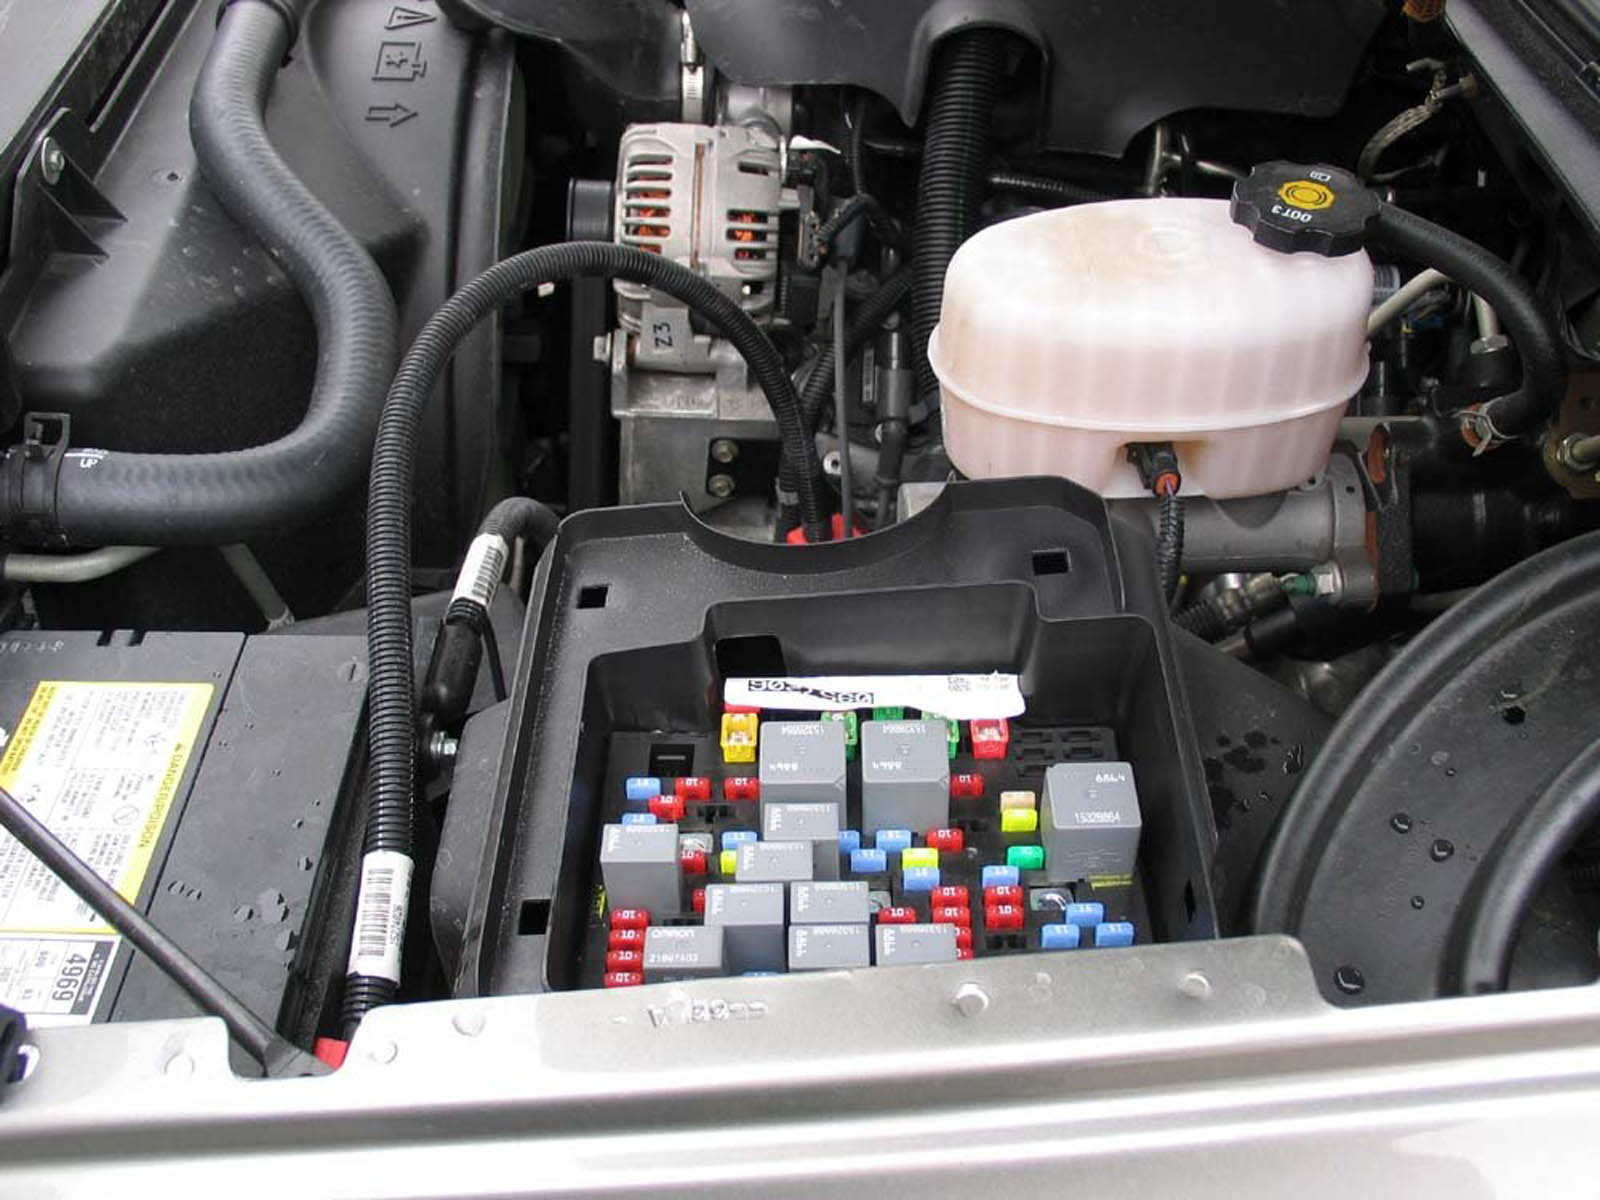 chevrolet silverado gmt fuse box diagram chevroletforum engine bay fuse box